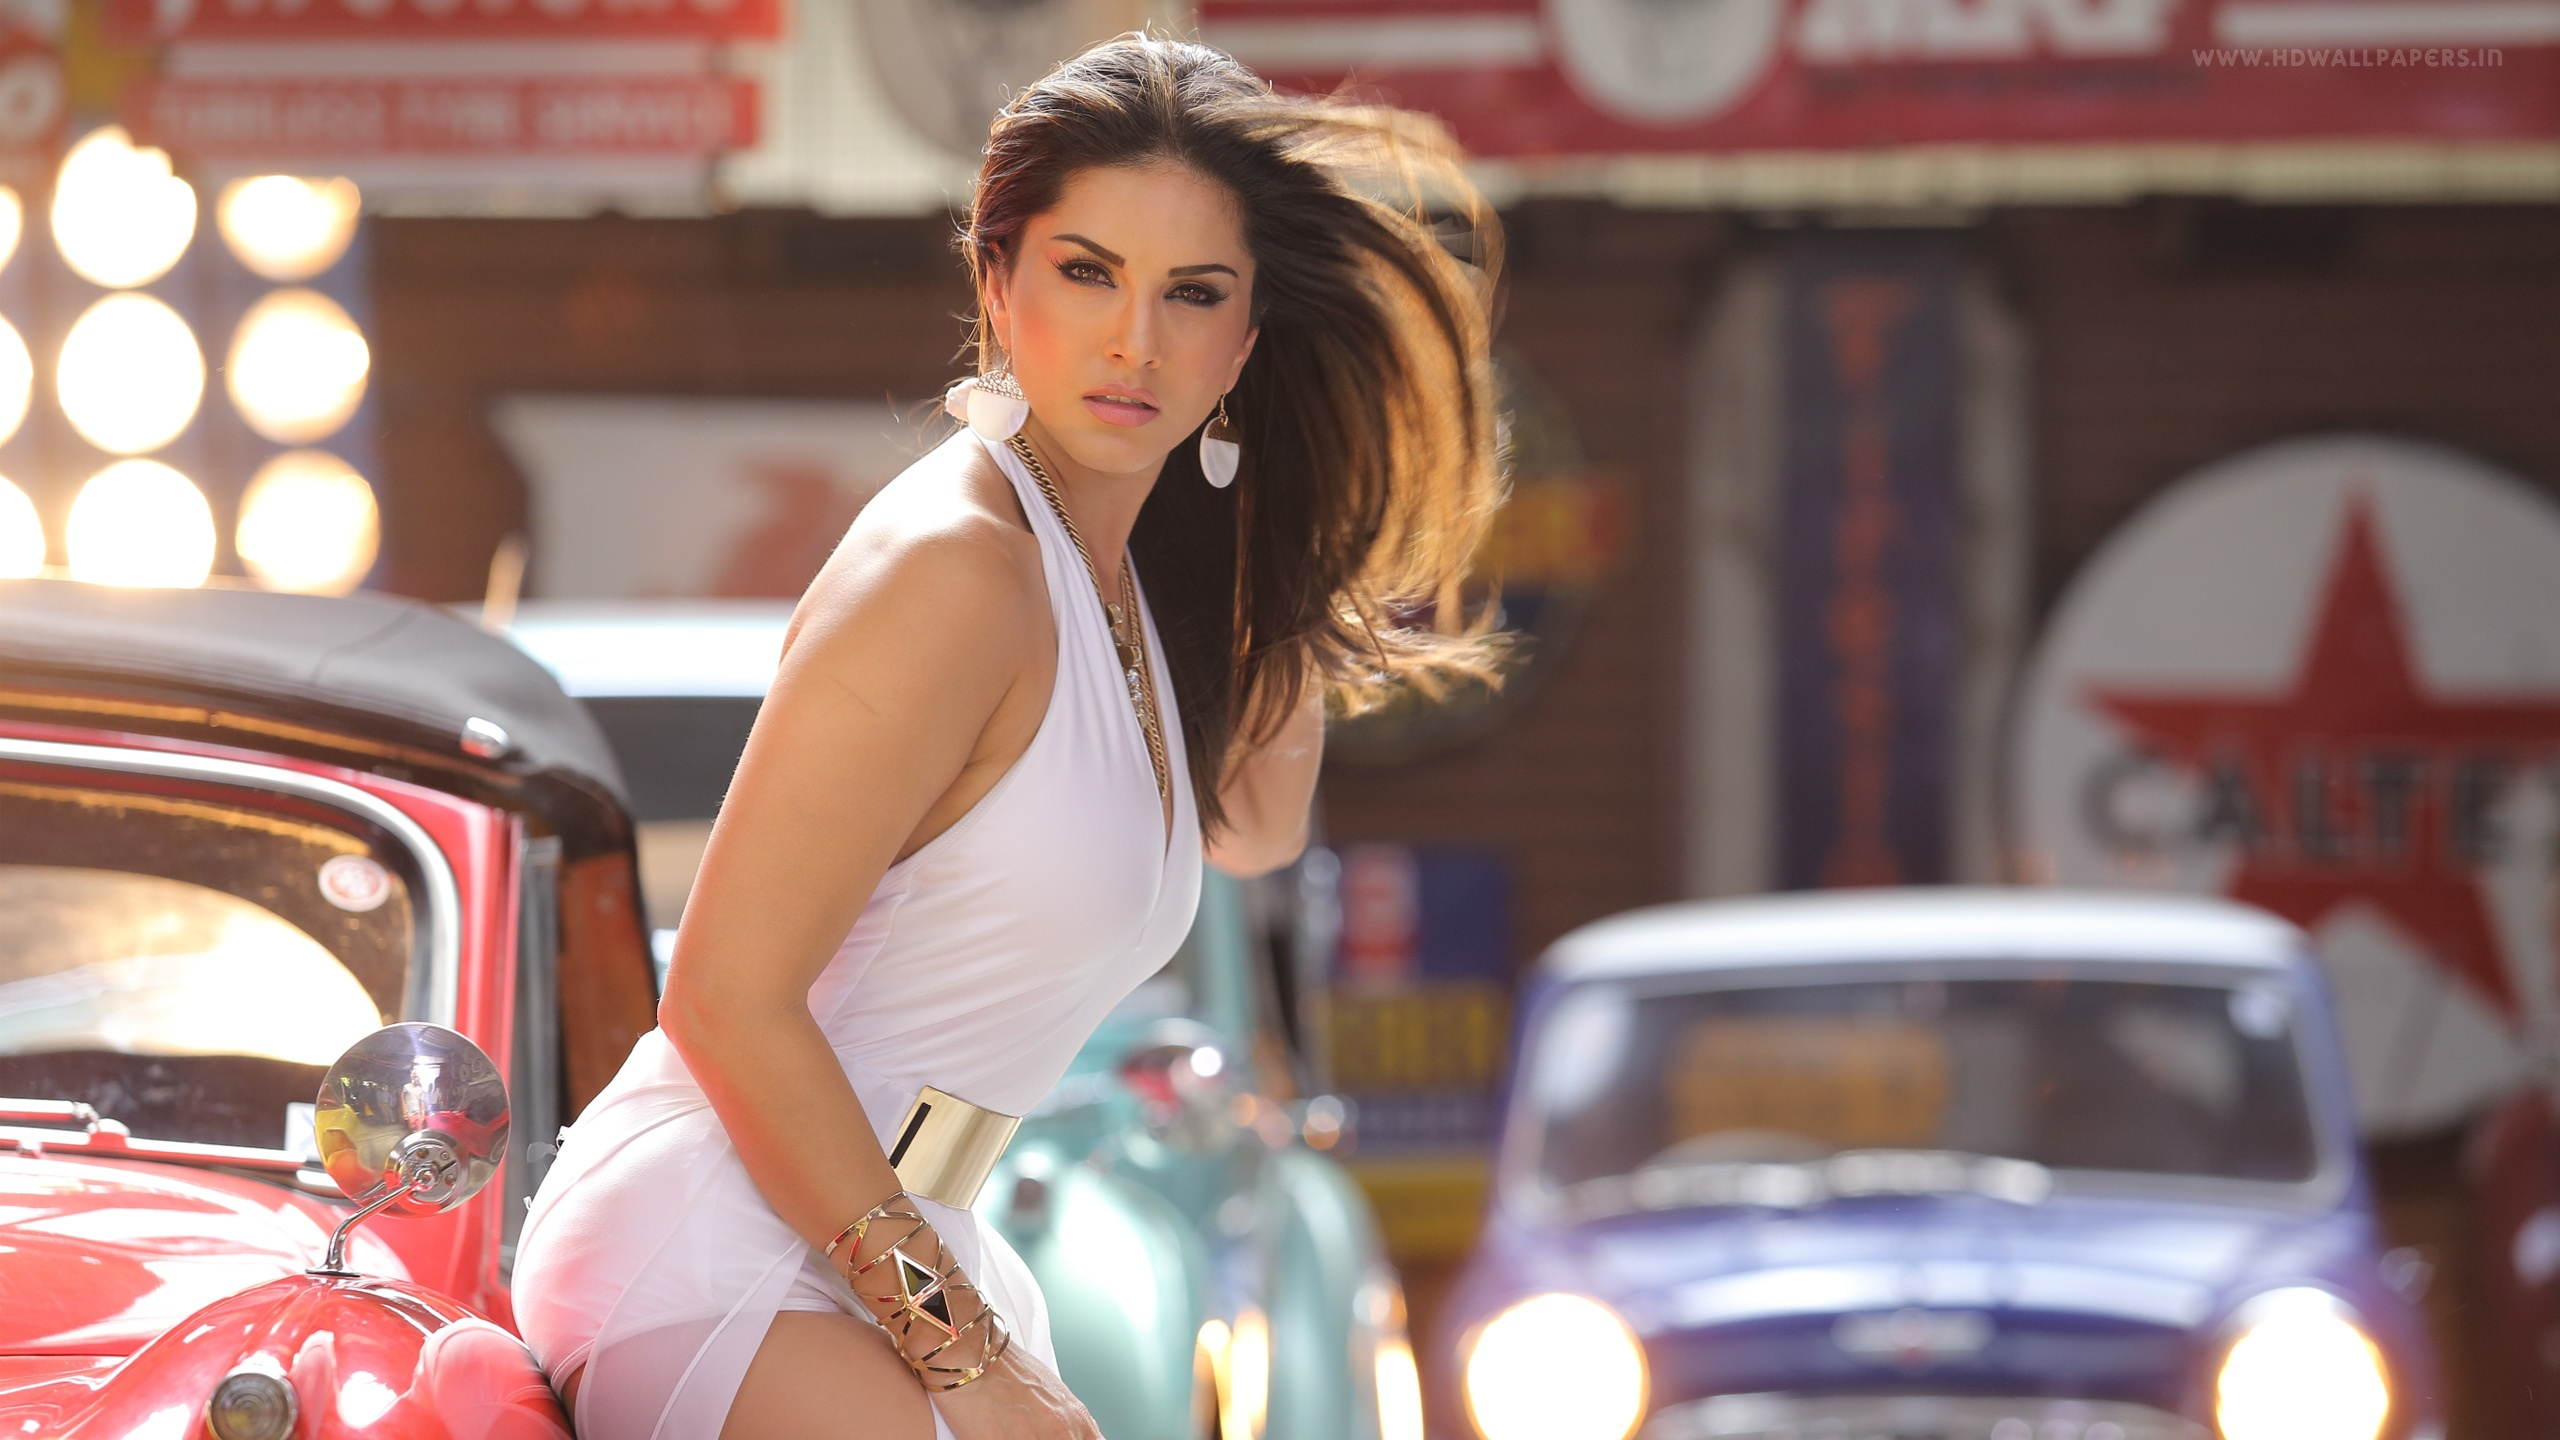 sunny leone kannada movie wallpapers in jpg format for free download